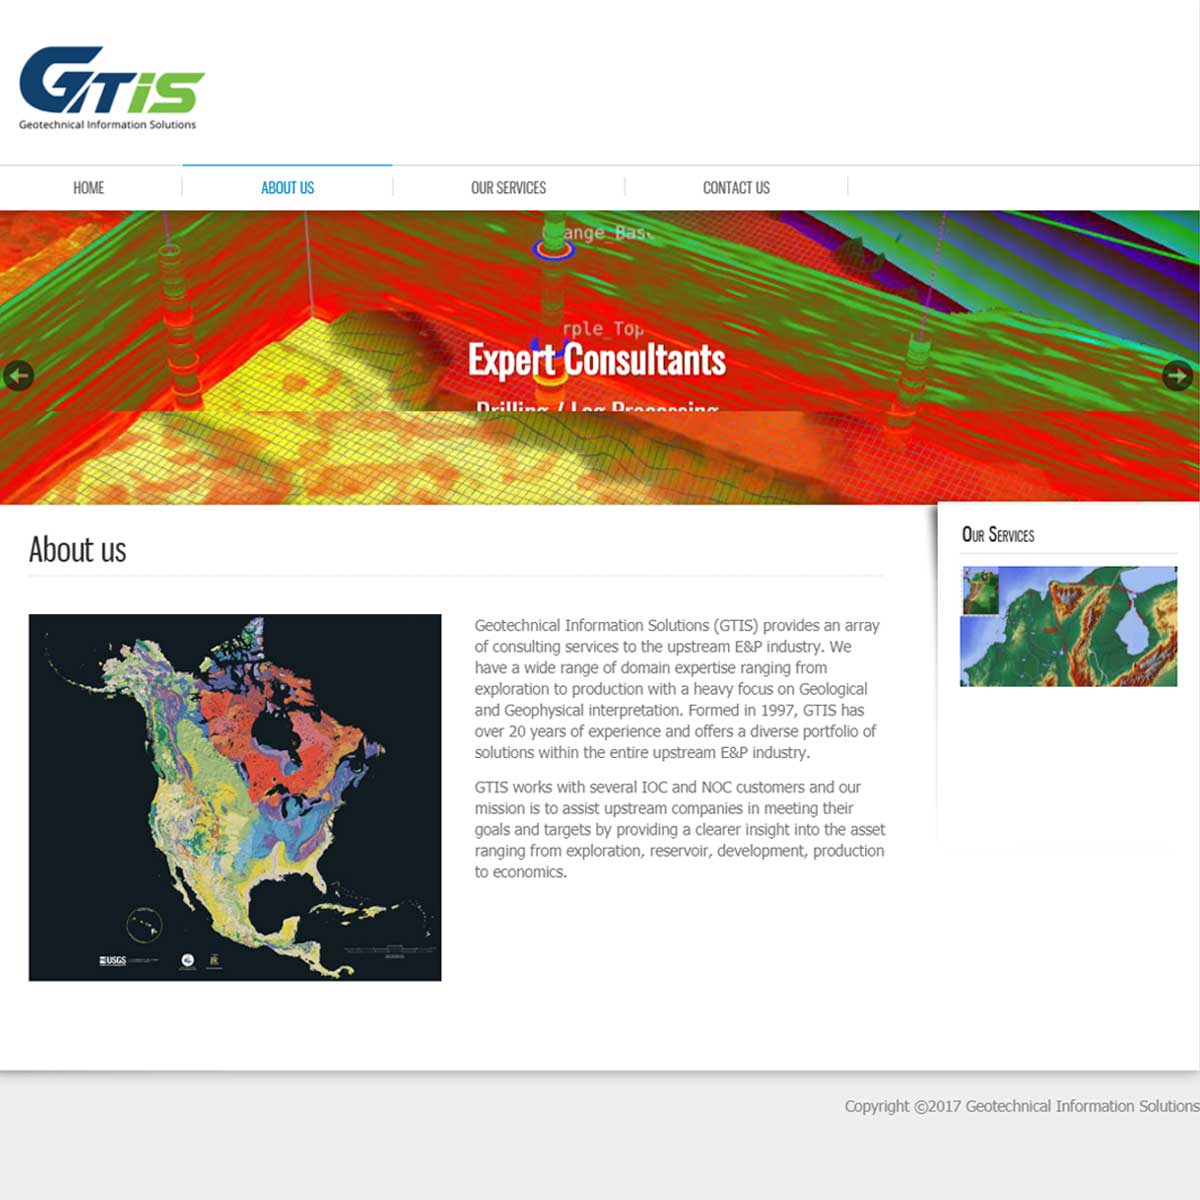 geotech-info-solutions-1200